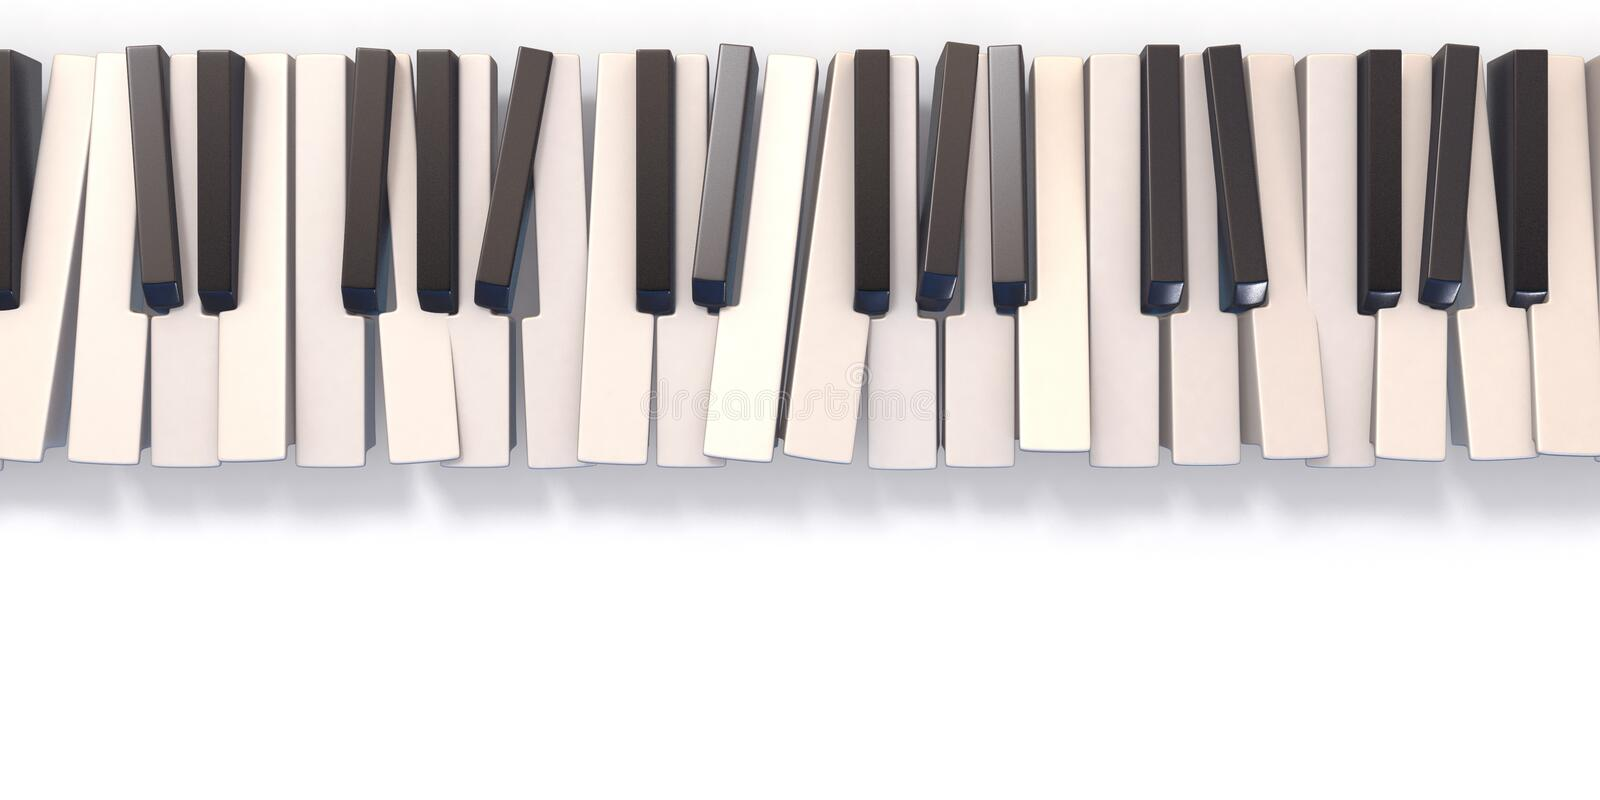 Unordered abstract piano keyboard 3D royalty free stock photos